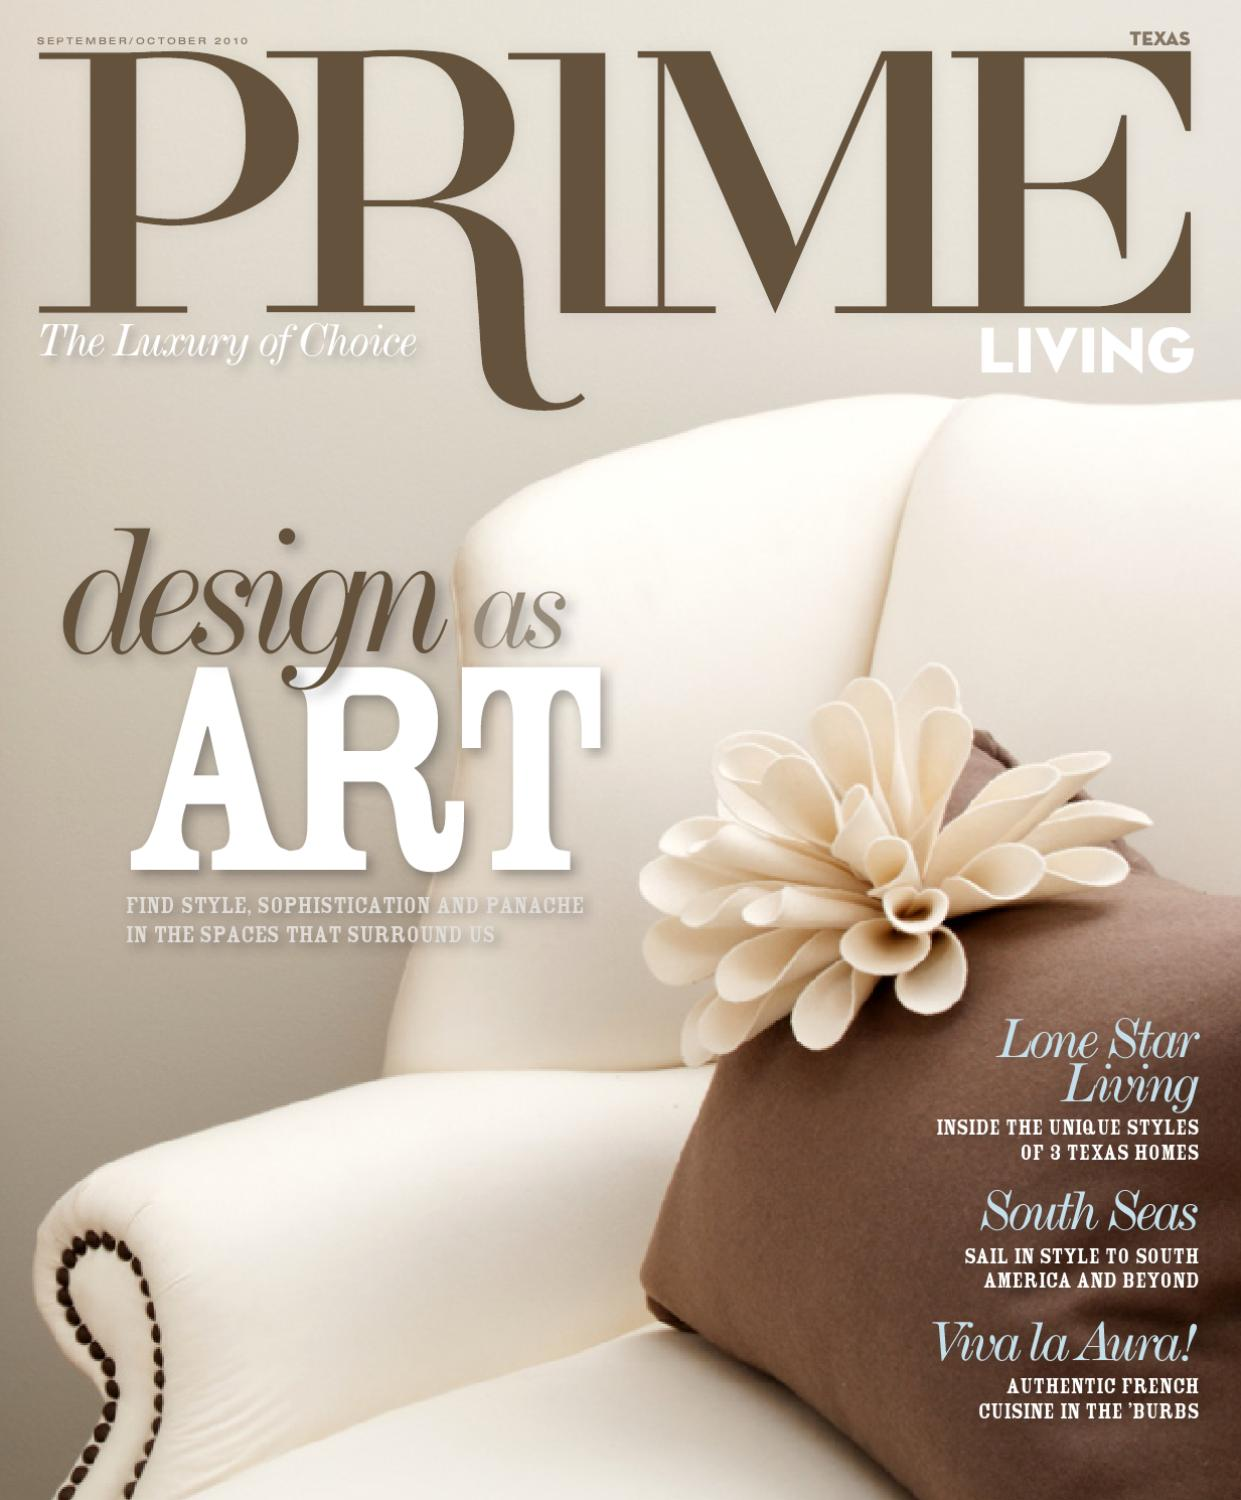 hot sales 2501a 70e9d PRIME Living Sept Oct 2010 by SRG Services, Inc. - issuu